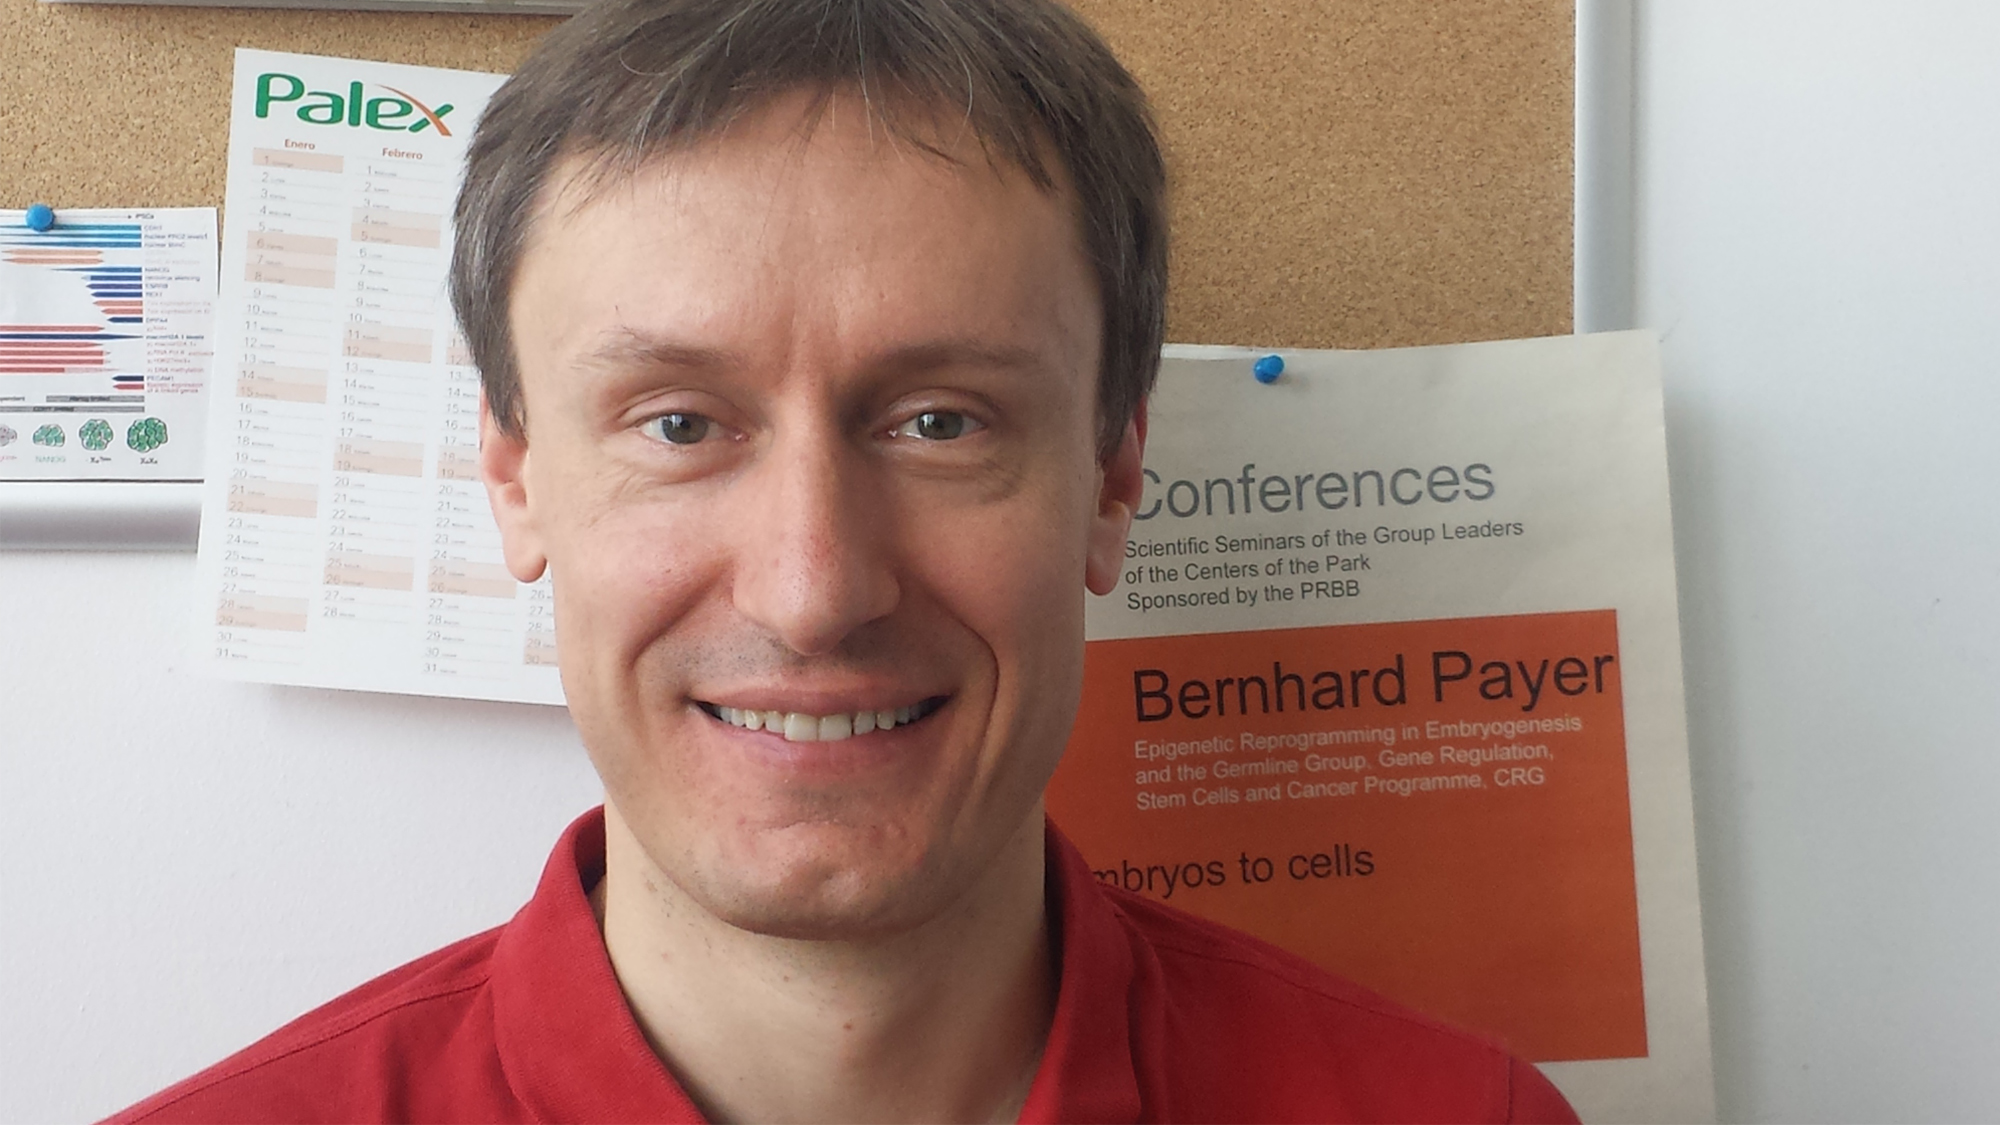 Bernhard Payer is group leader of the Epigenetic reprogramming in embryogenesis and the germline Lab.